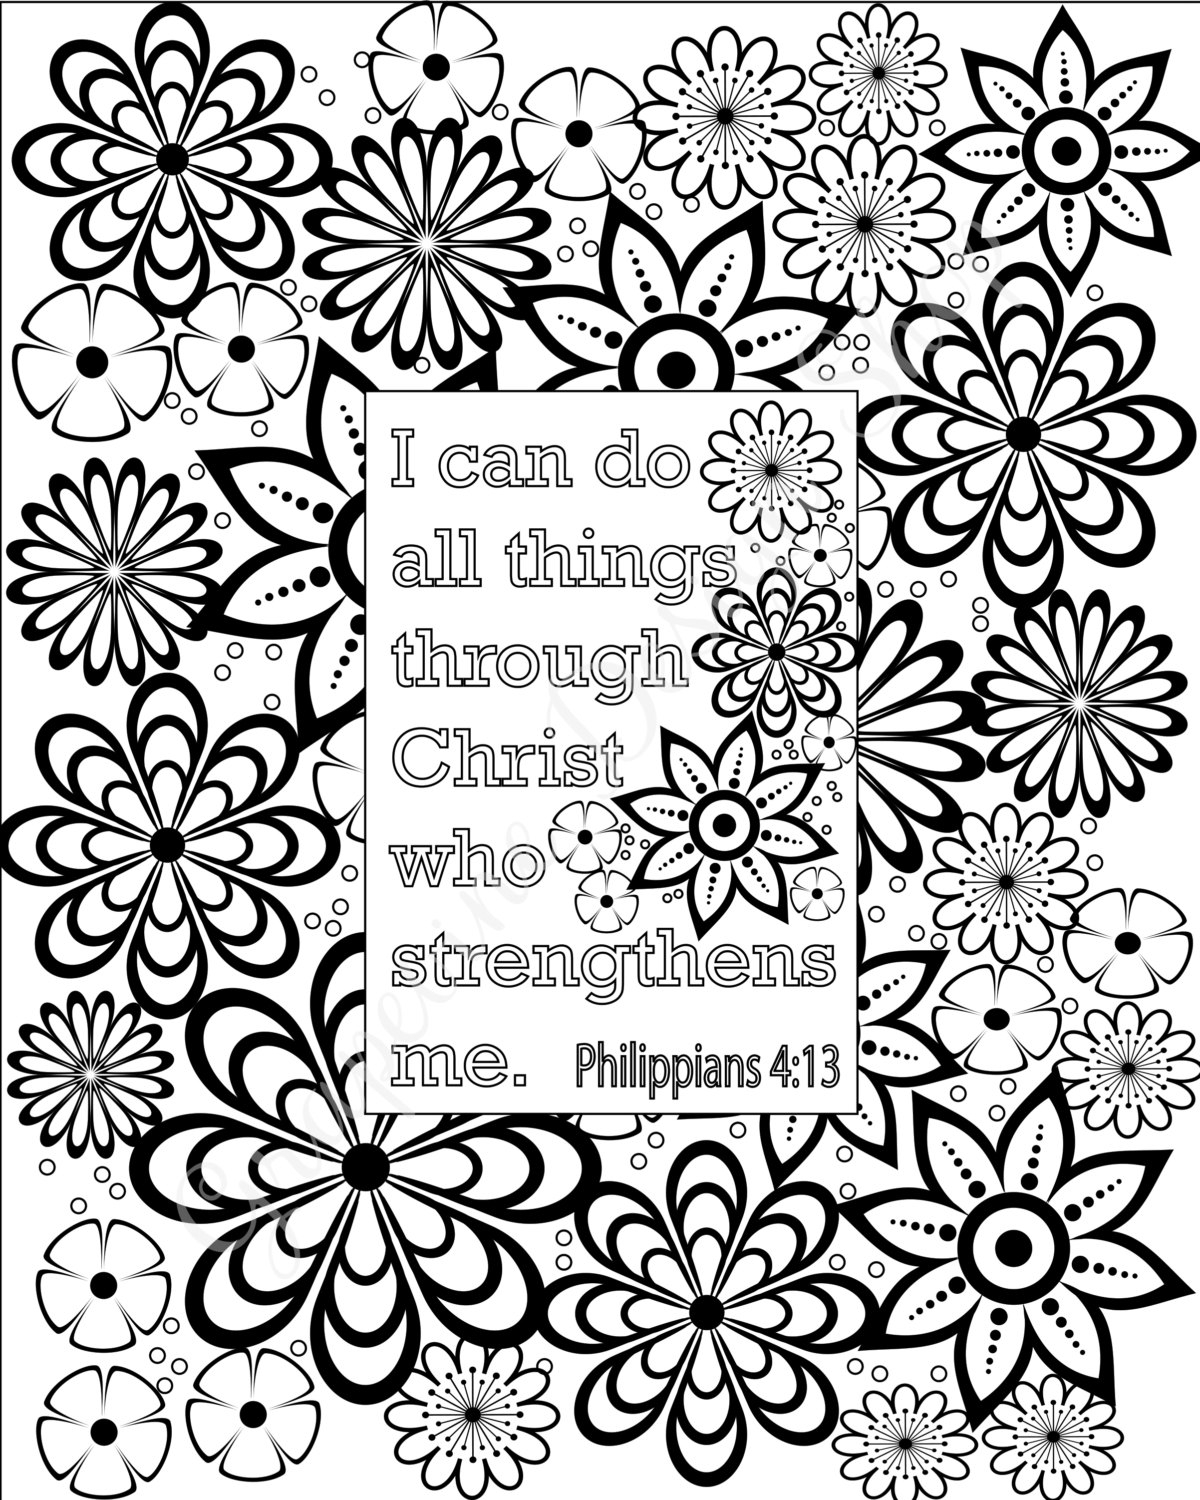 free printable coloring pages for adults and kids bible verse coloring pages for kids at getcoloringscom kids free adults coloring printable and pages for